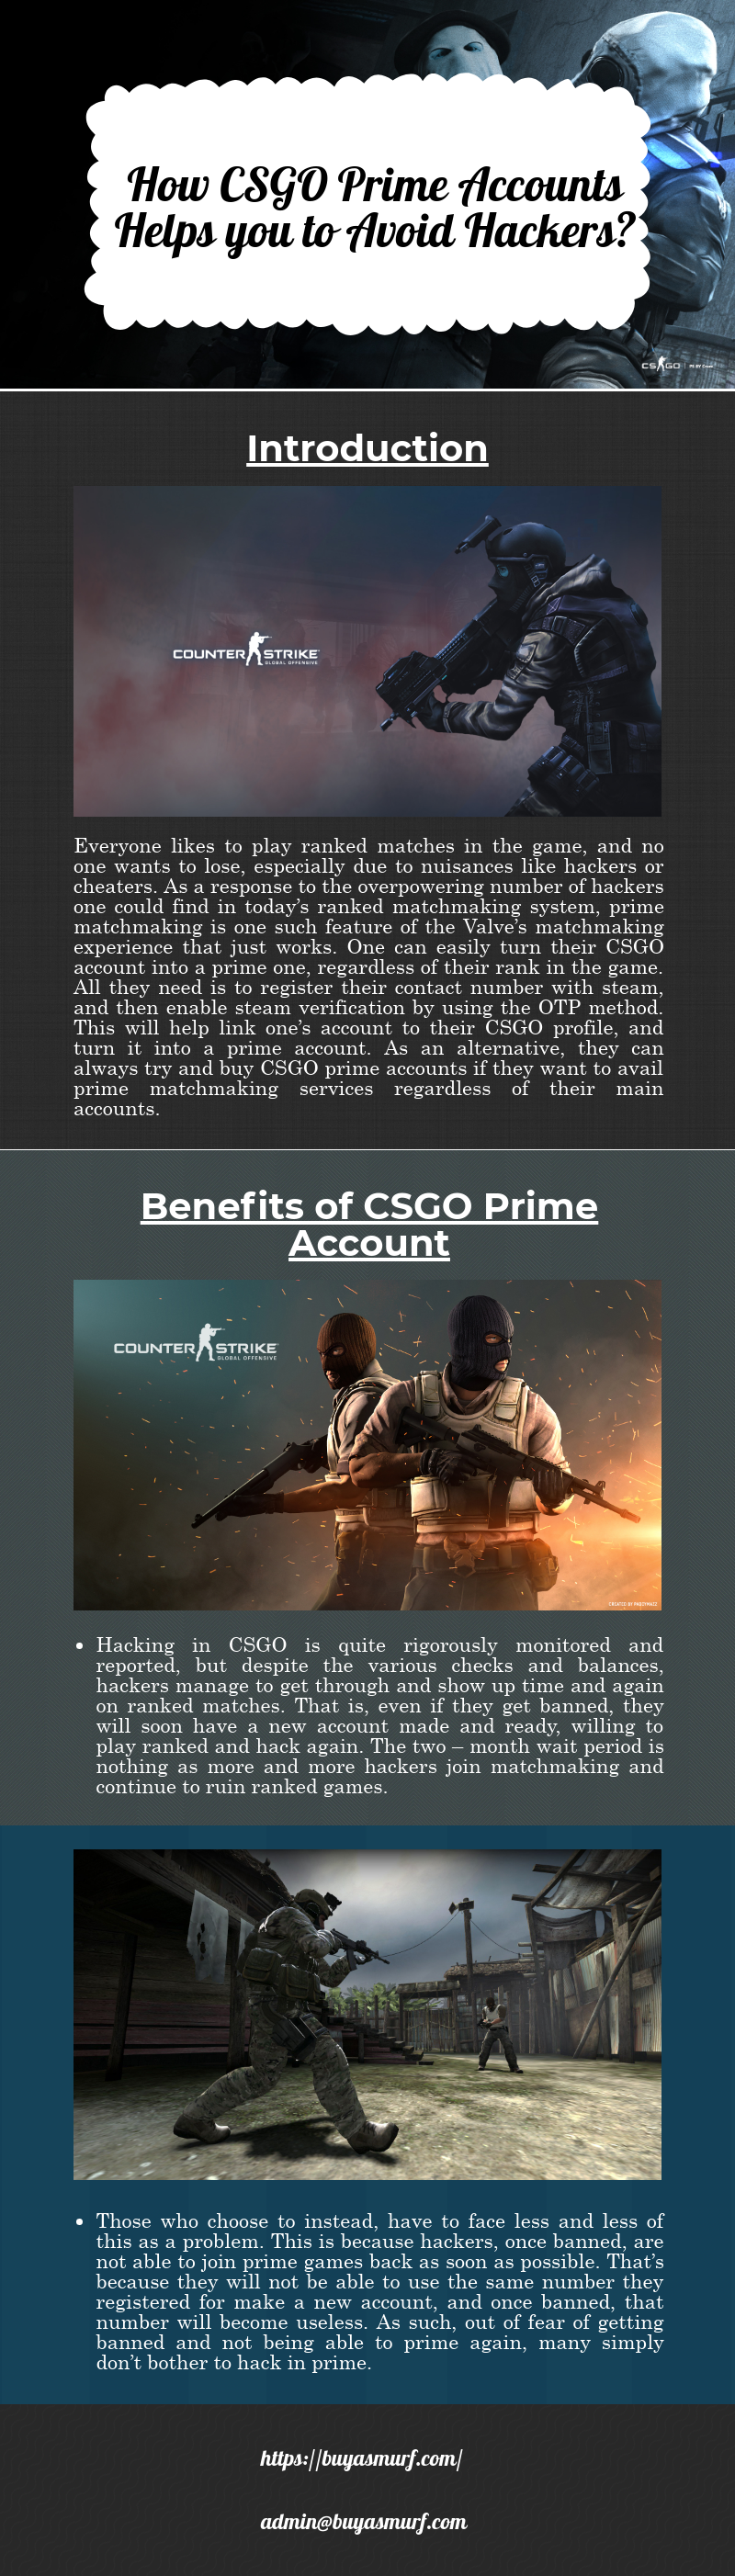 prime matchmaking benefits